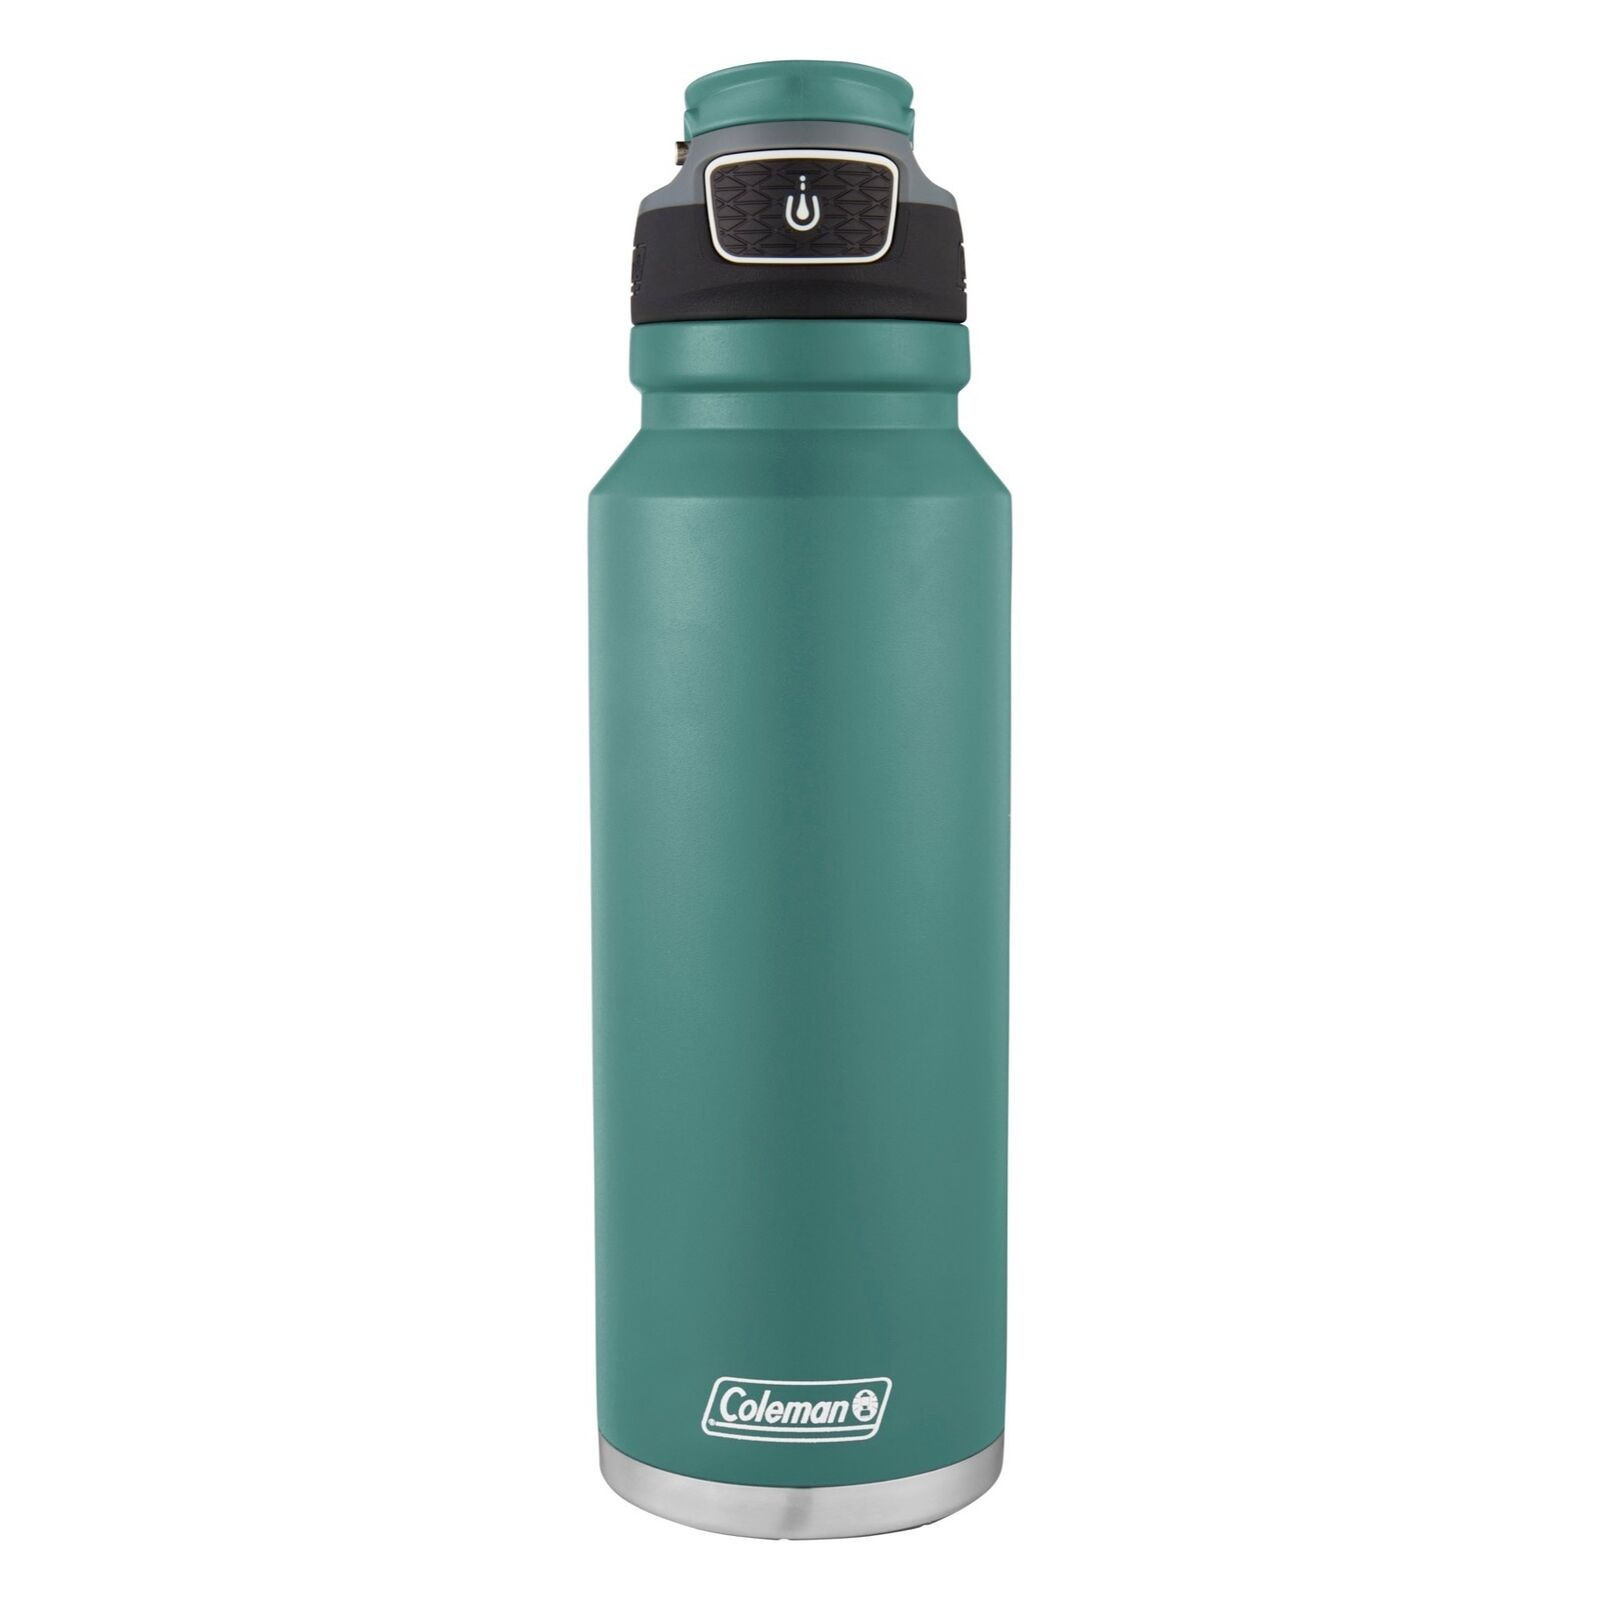 Coleman FreeFlow Autoseal Water Bottle 40oz Seafoam bluee Stainless Steel Sport